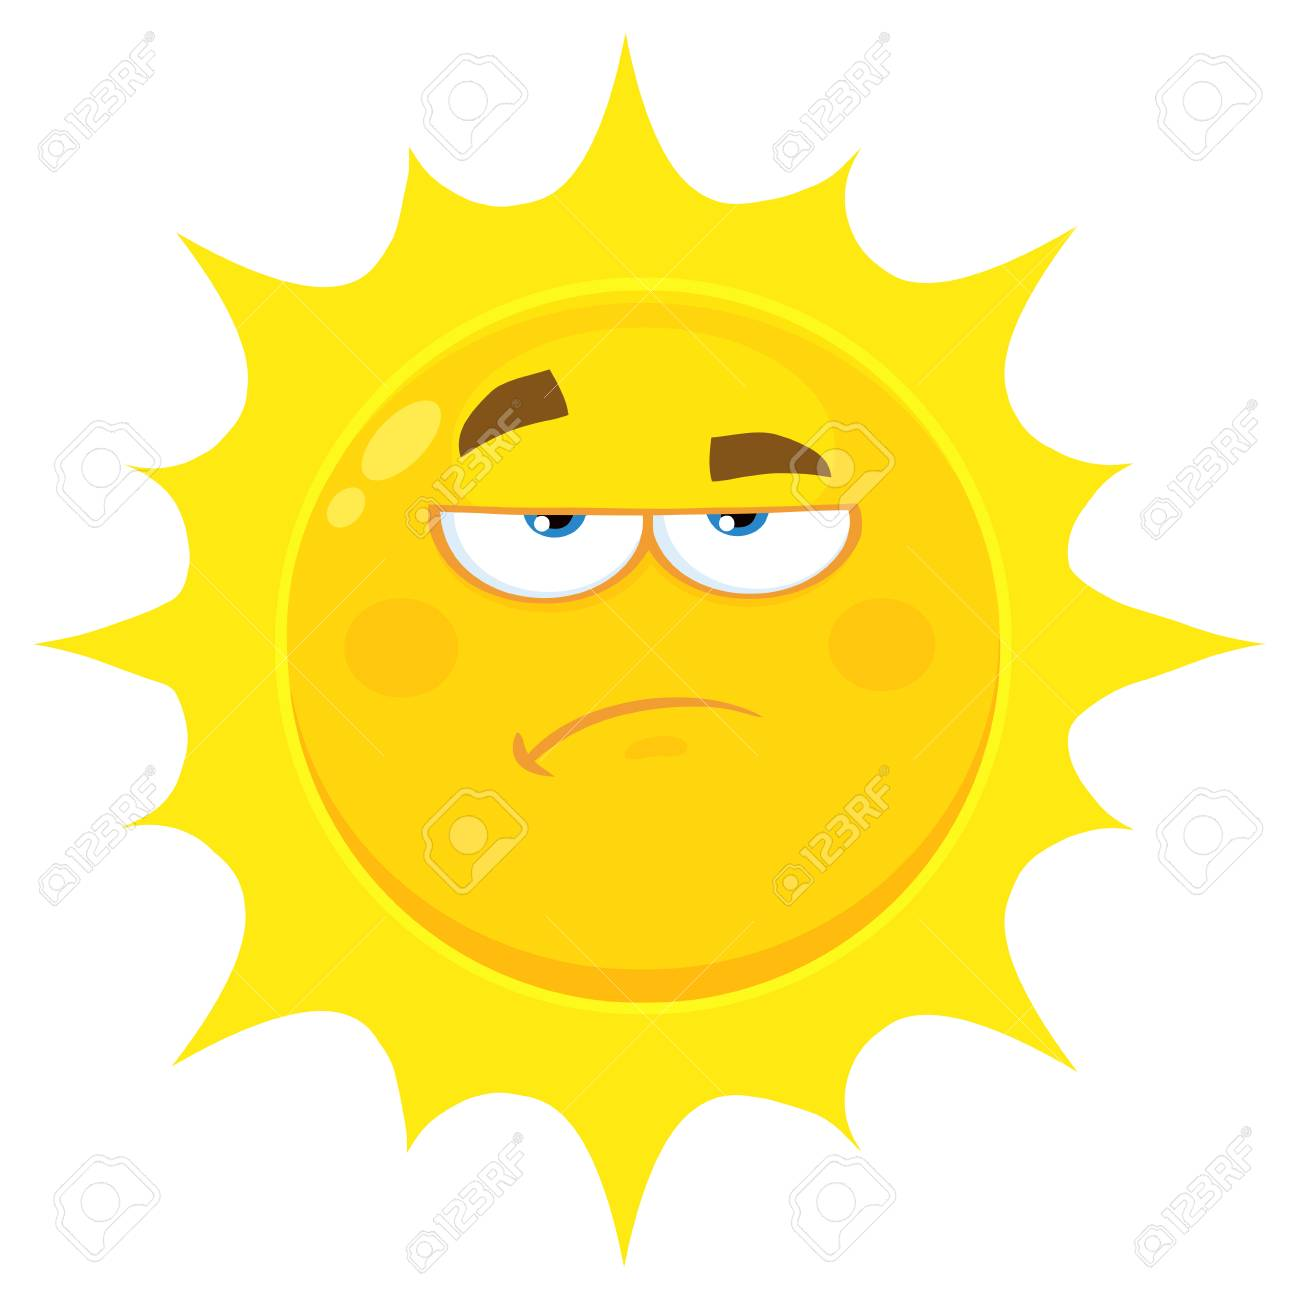 1299x1300 Grumpy Yellow Sun Cartoon Emoji Face Character With Sadness